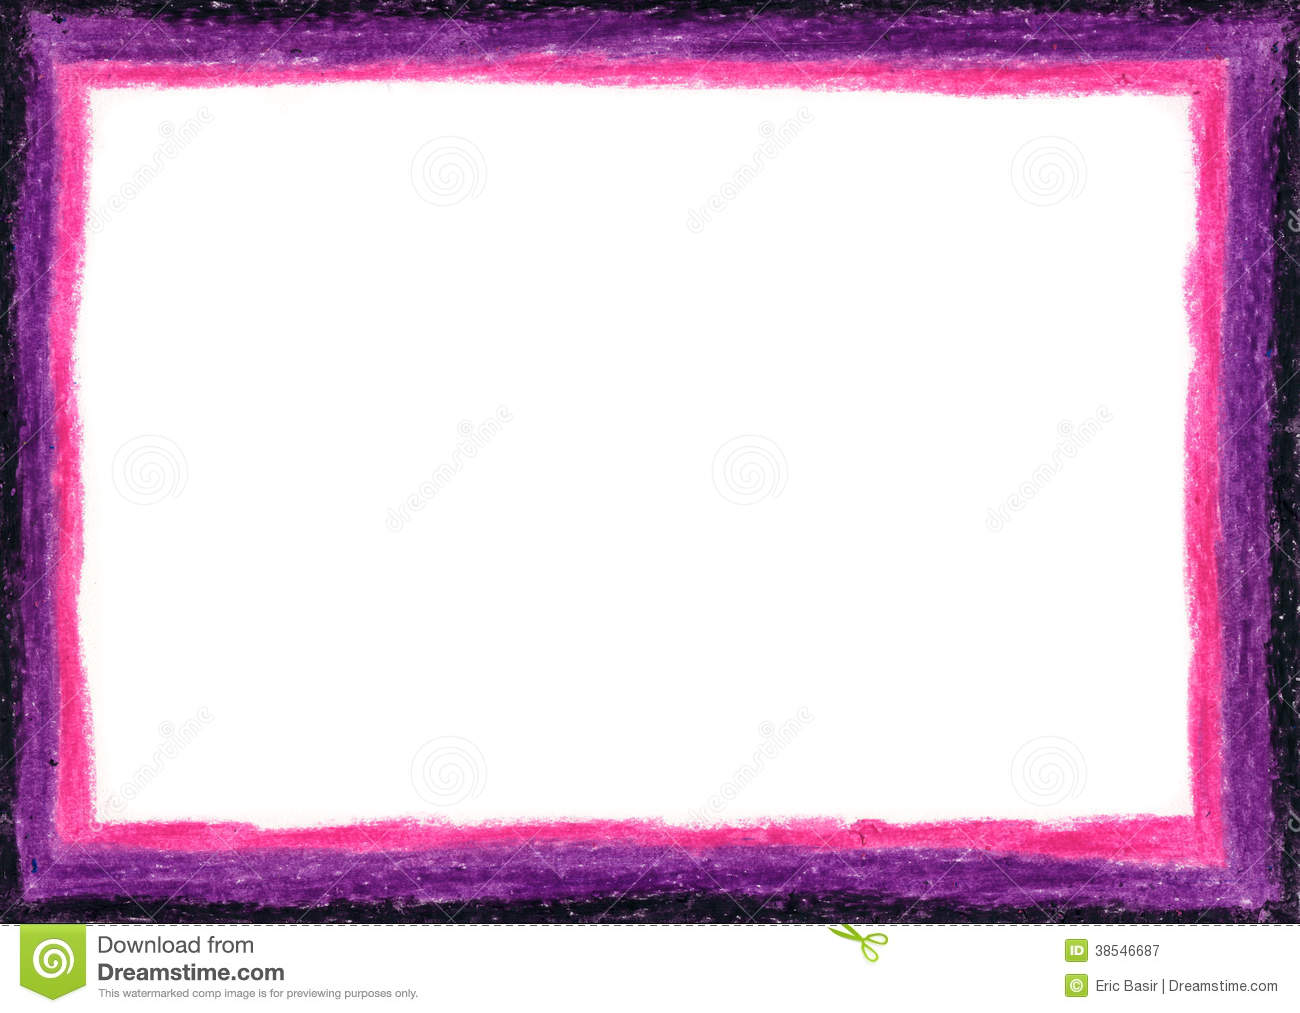 Royalty Free Stock Photography Pink Purple Empty Frame Crayon White Center Image38546687 on Violet Border Clip Art